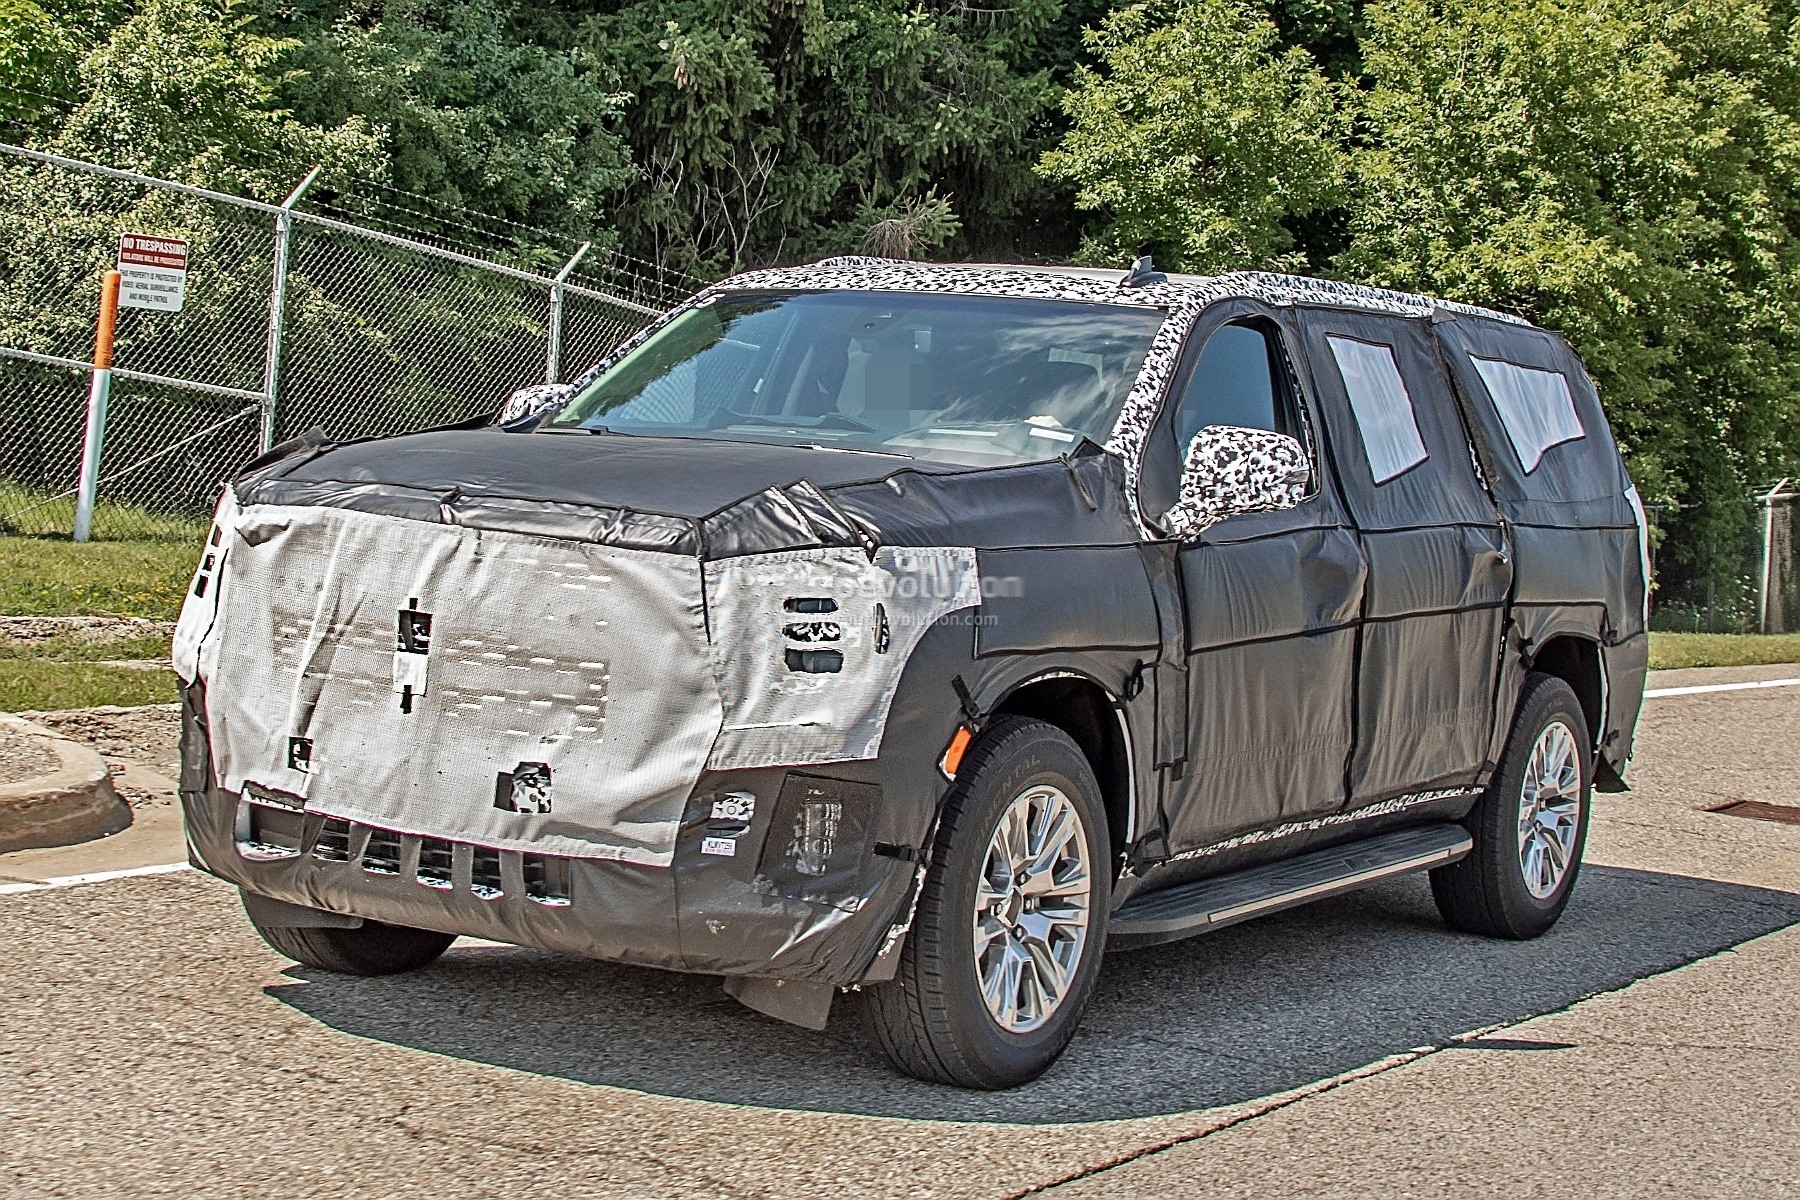 2021 gmc yukon spied in xl denali configuration out in the